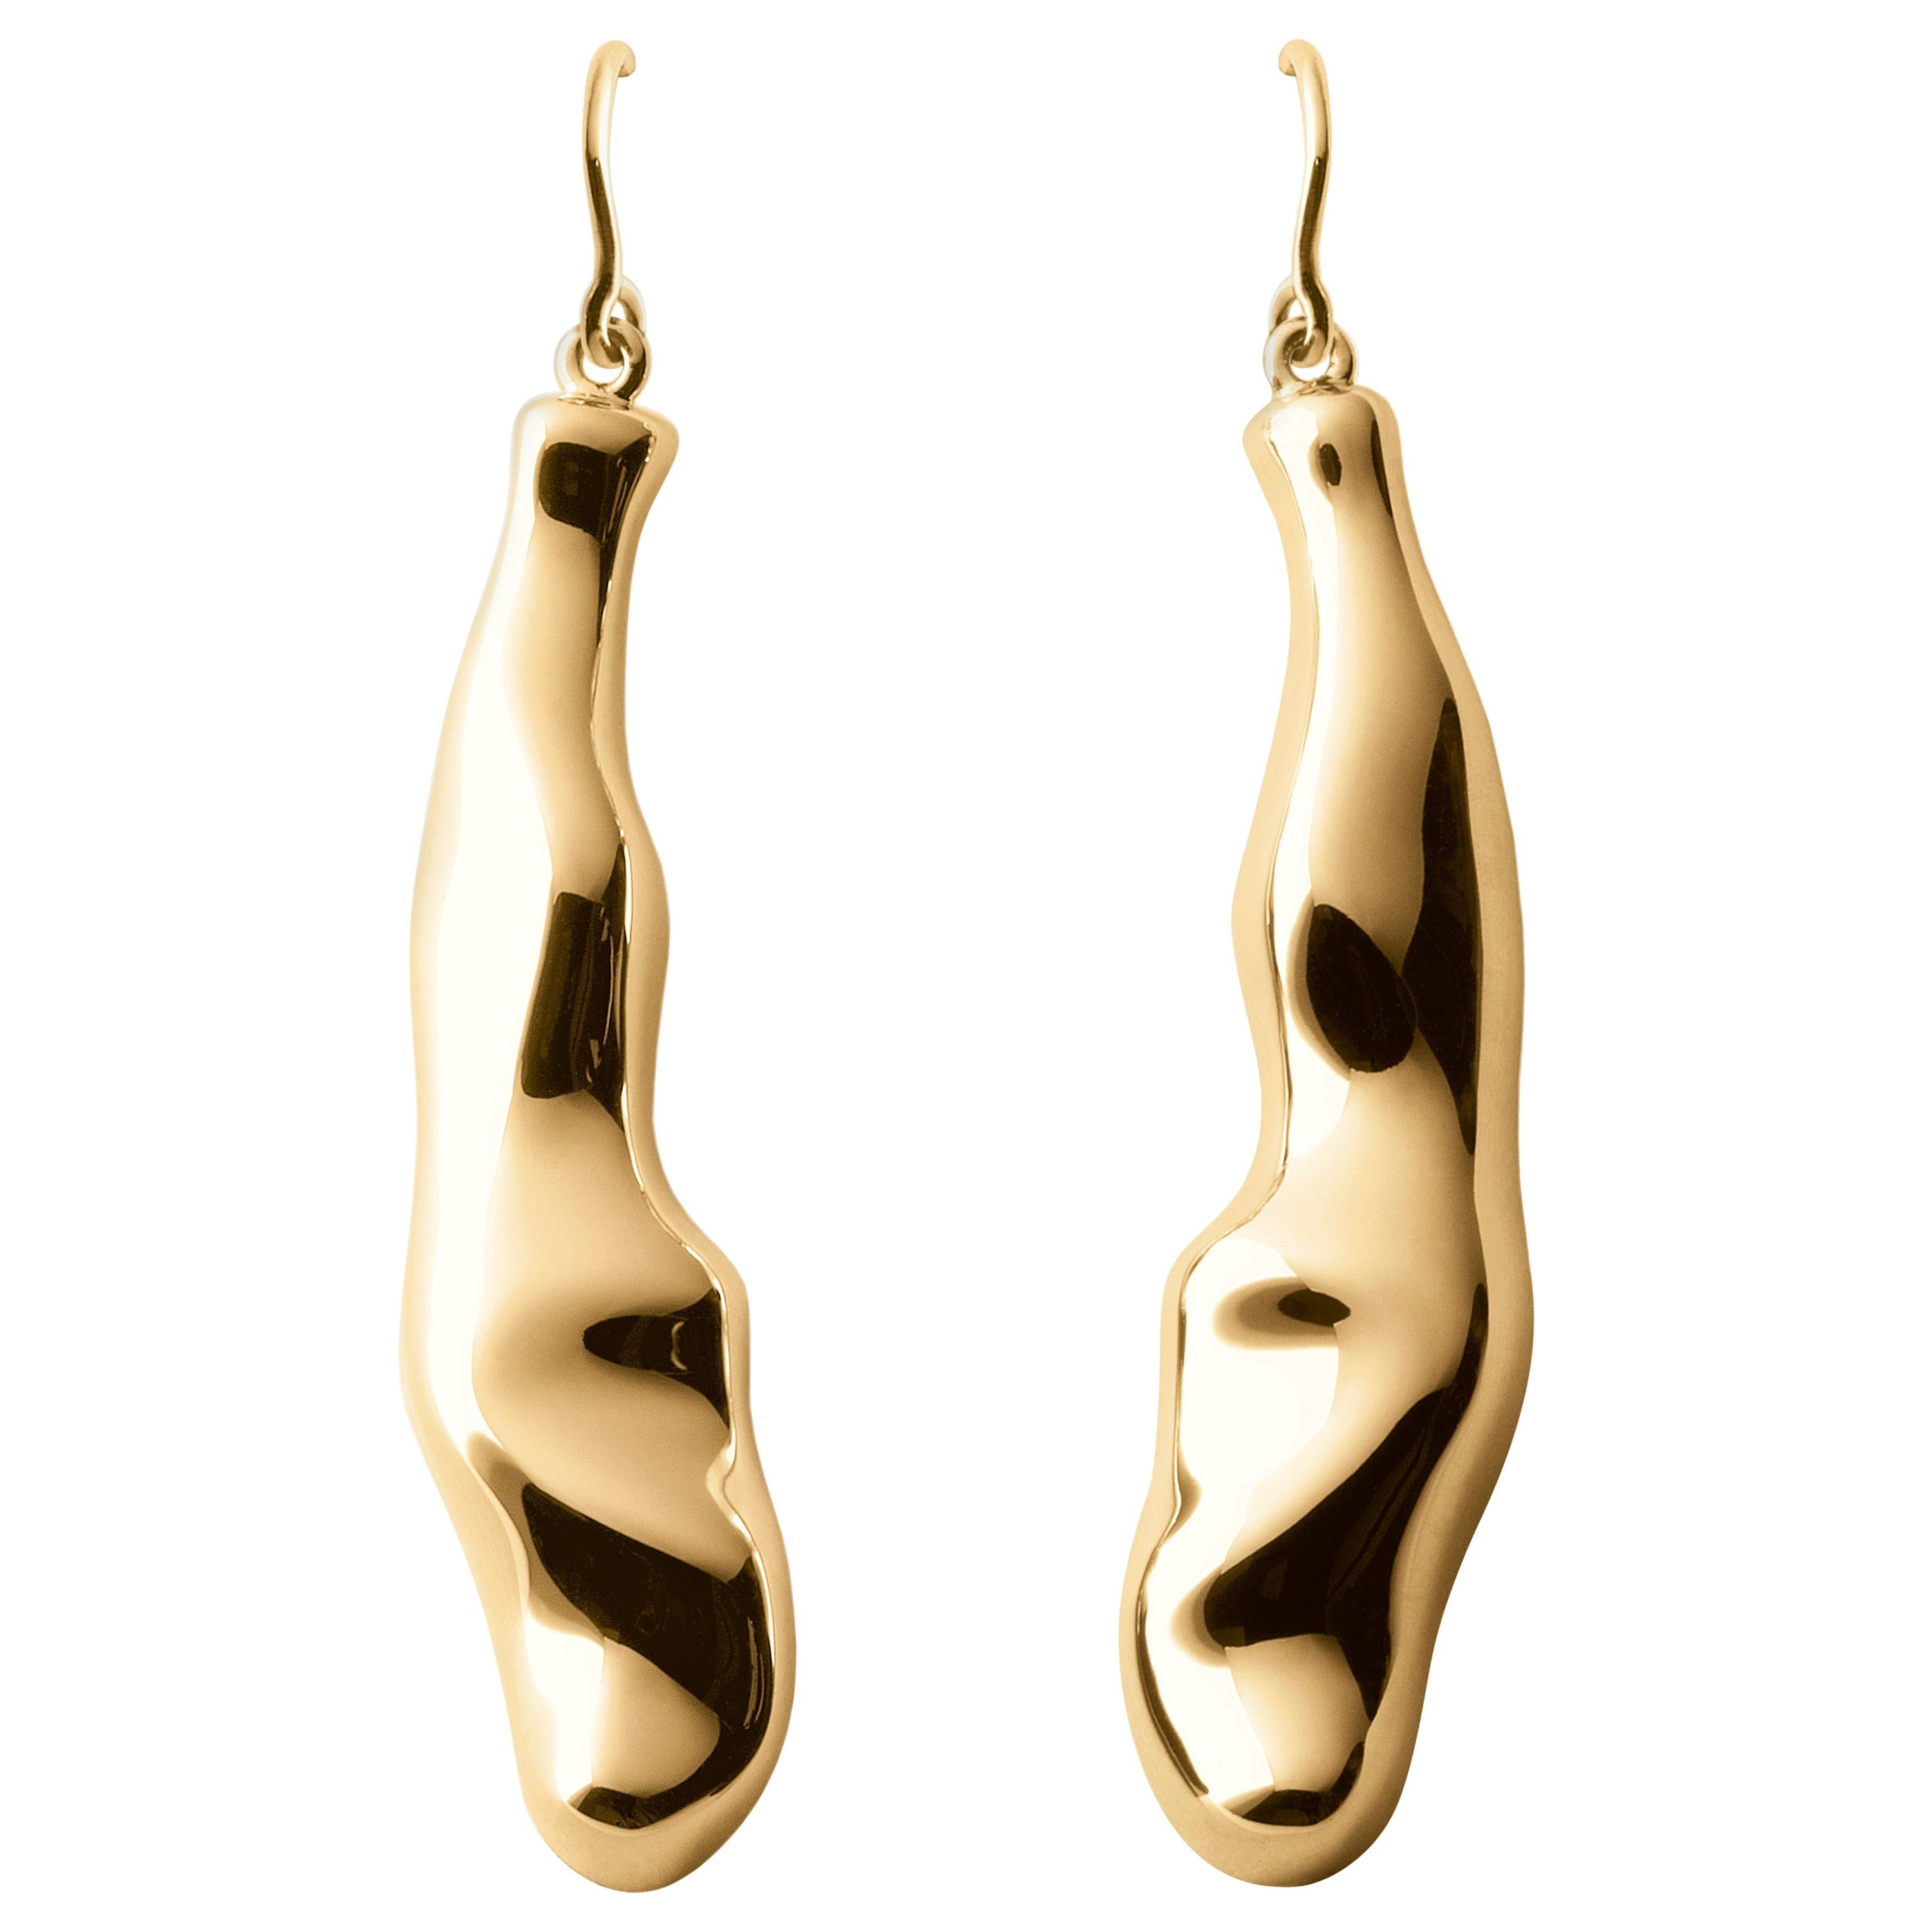 Nathalie Jean Contemporary Gold Limited Edition Drop Dangle Earrings